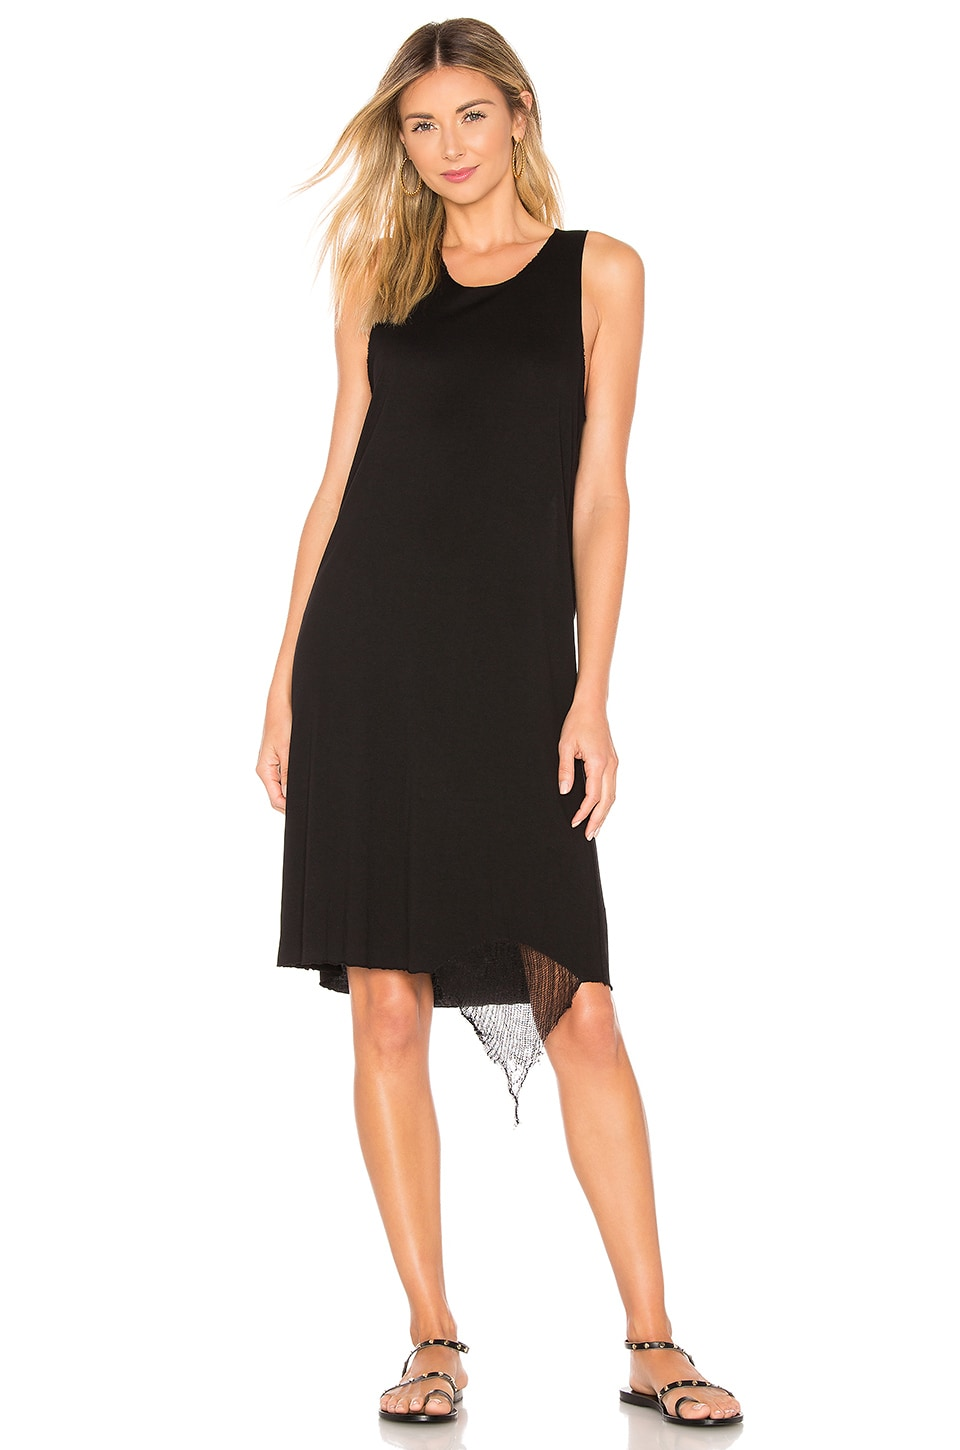 Raquel Allegra Muscle Tank Dress in Black